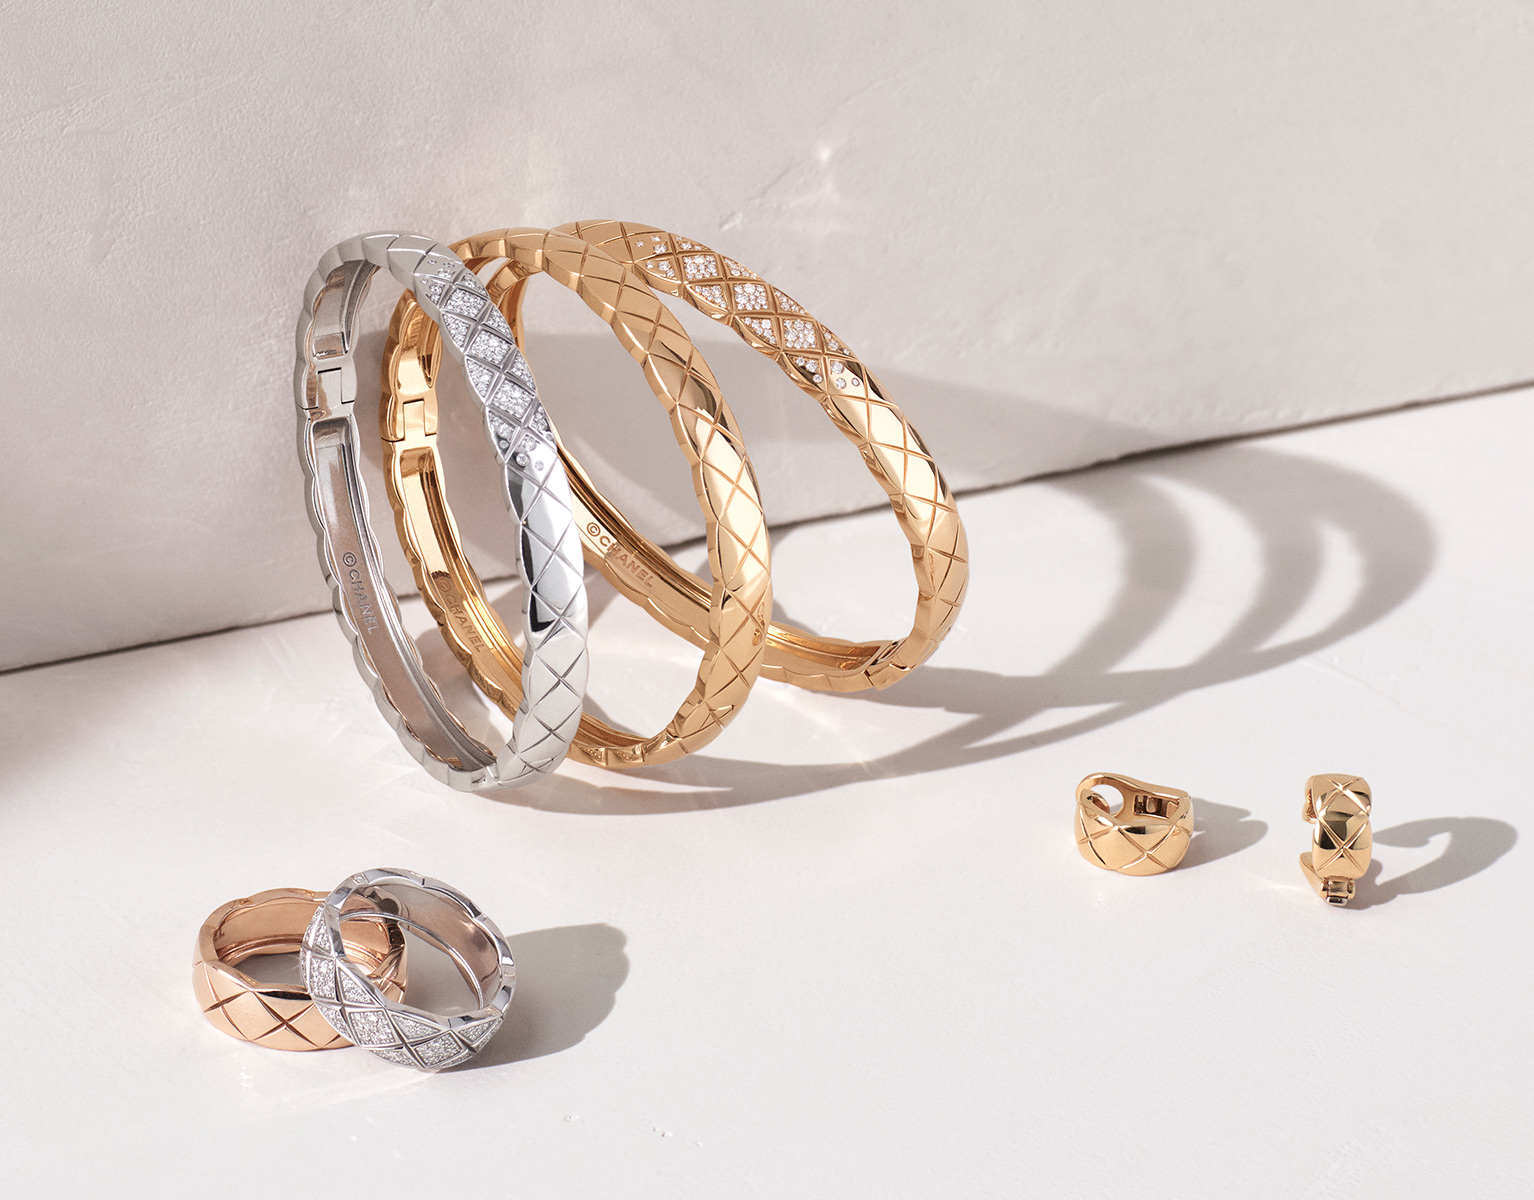 Watches jewelry fine jewelry chanel for What is fine jewelry